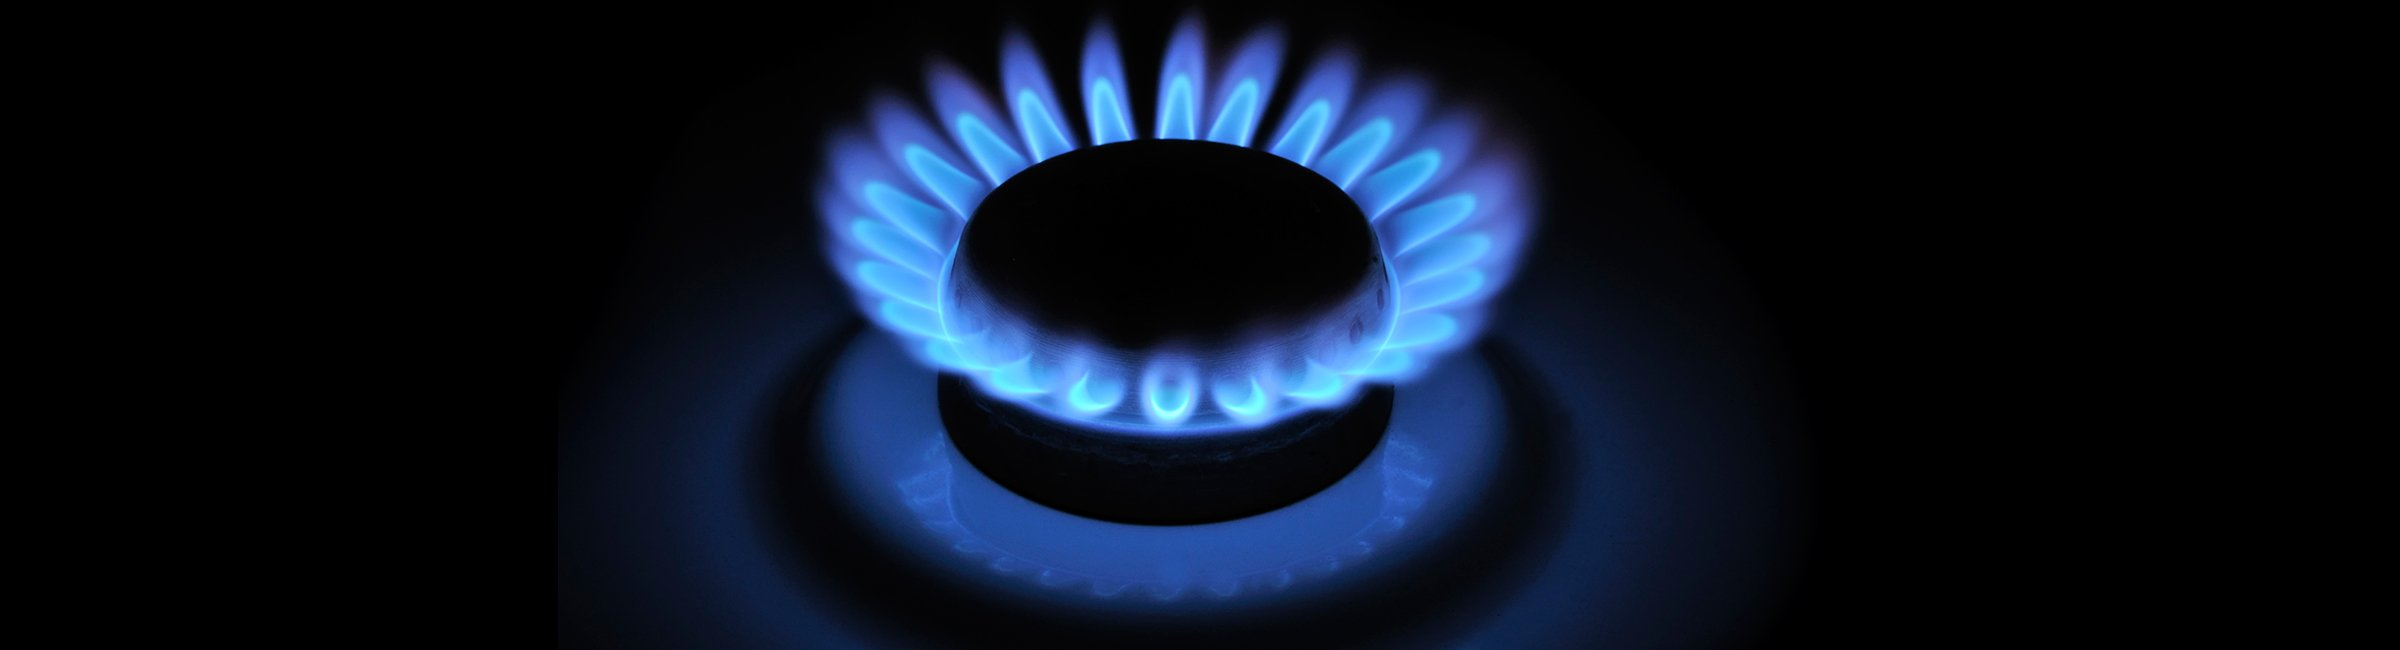 croydon plumbing and hot water blue gas flame